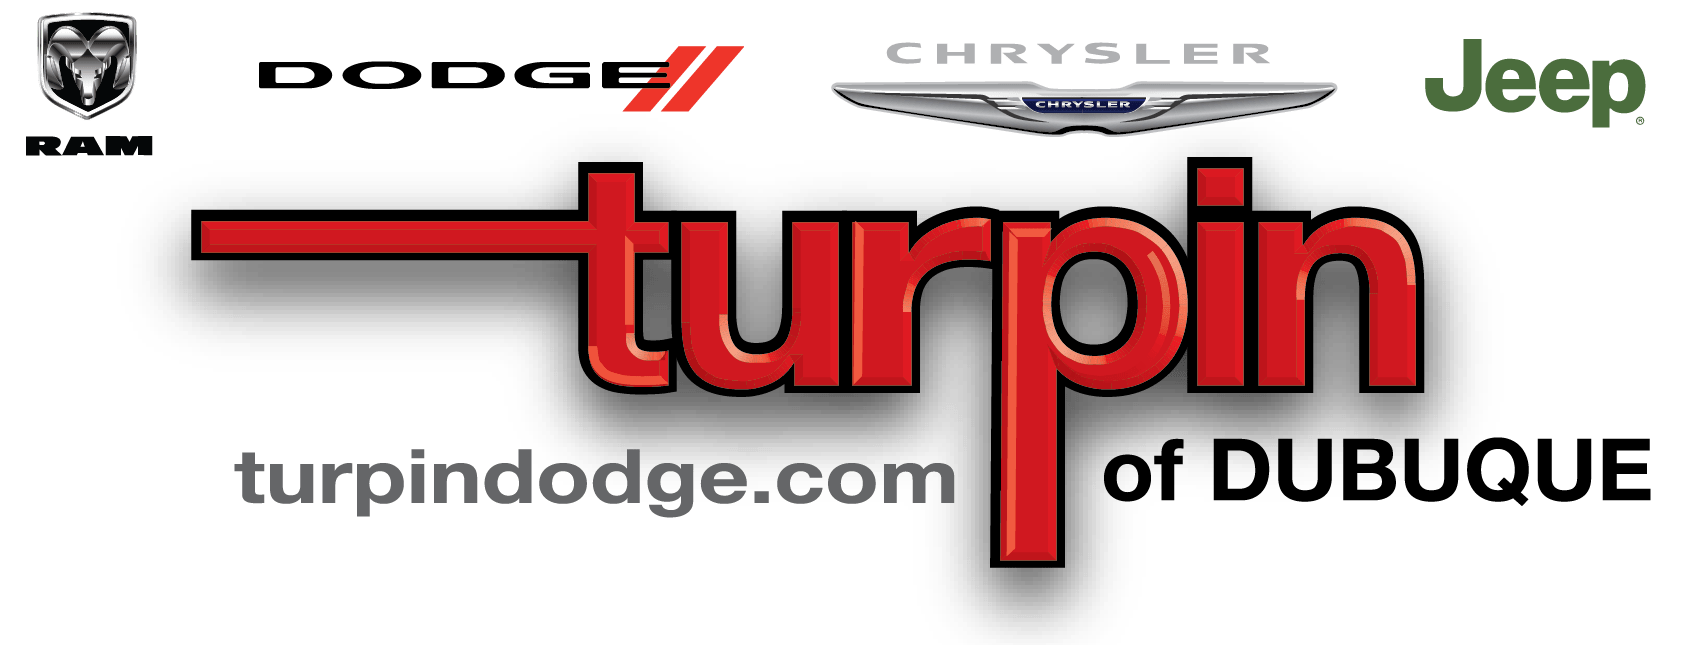 Turpin Dodge Chrysler Jeep logo